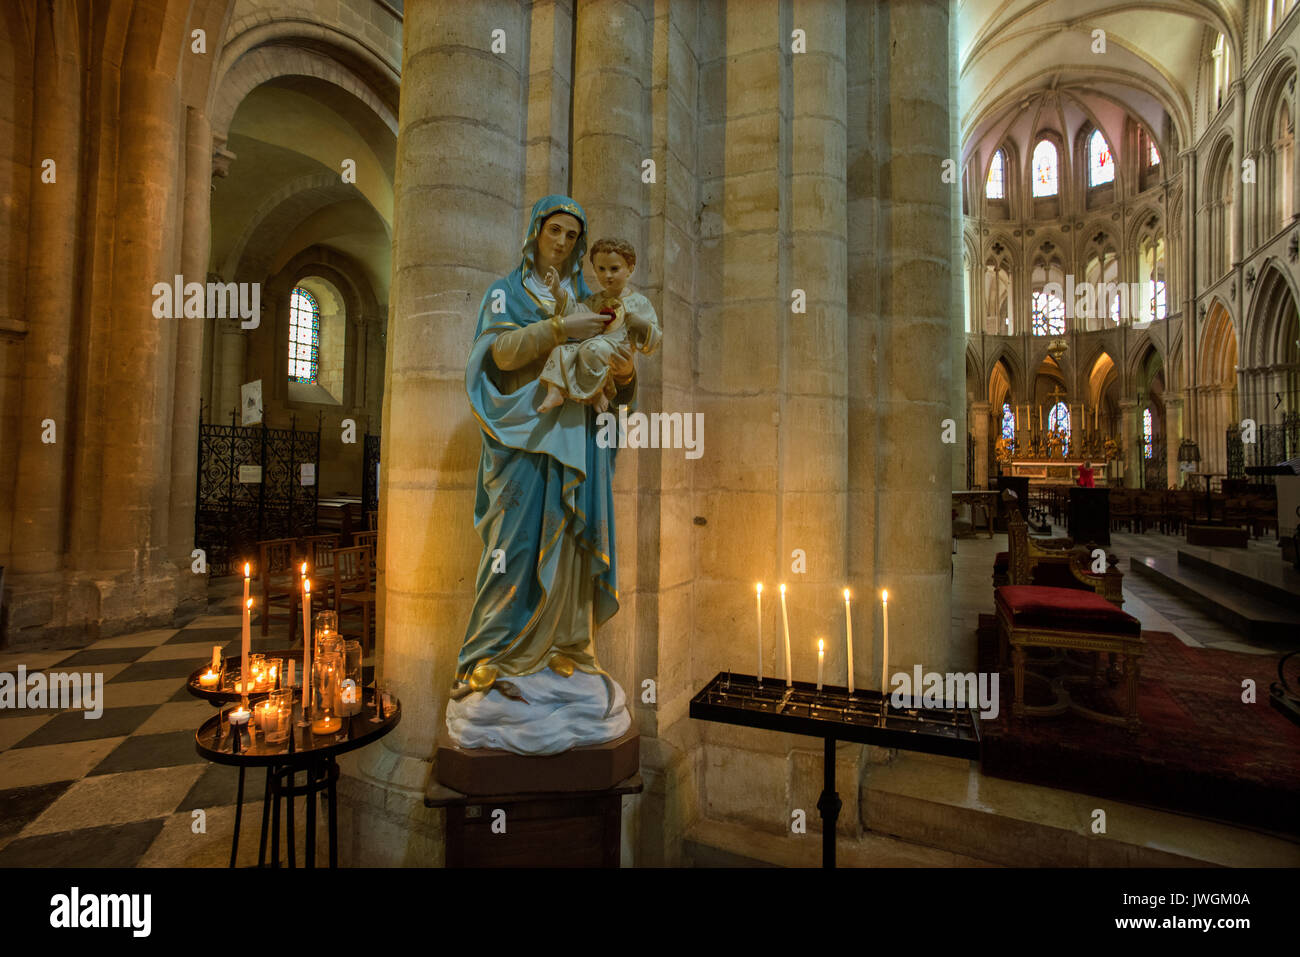 Caen, Normandy, France. The Abbaye aux Hommes ( Abbey for Men ), St Stephen's Church founded by William the - Stock Image